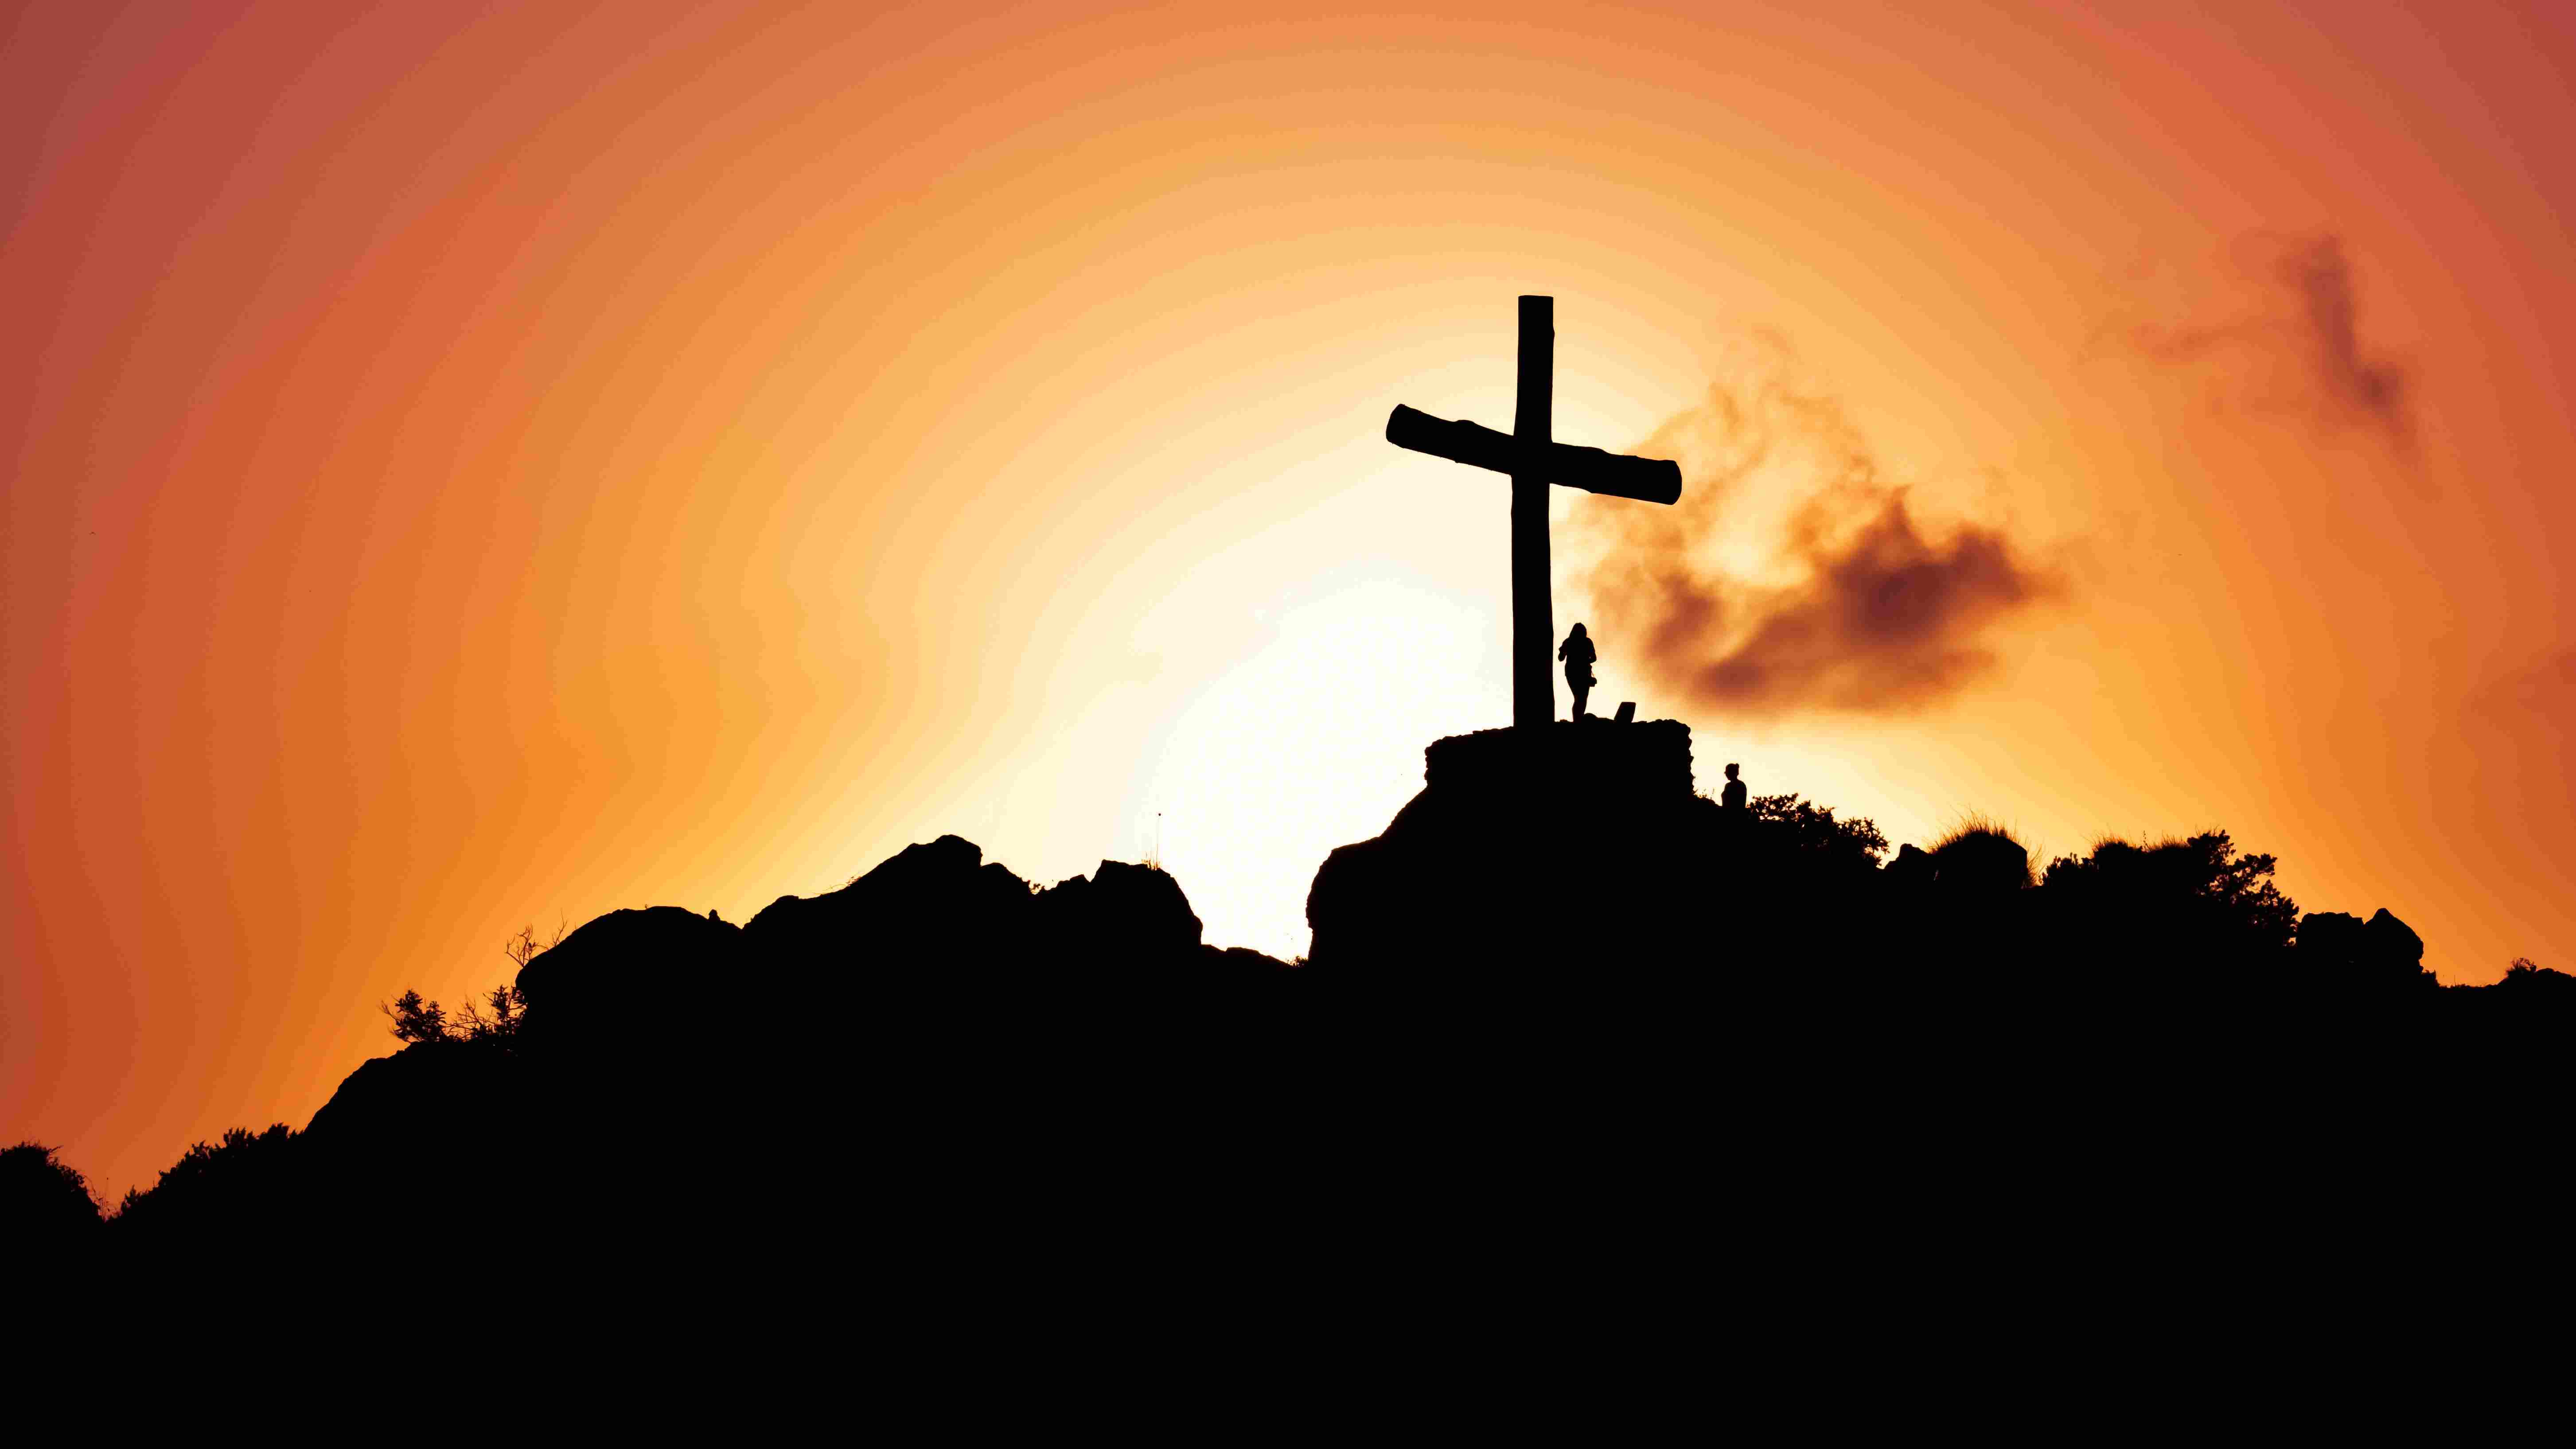 Cross on a hill next to a person backlit by a sunset sky.